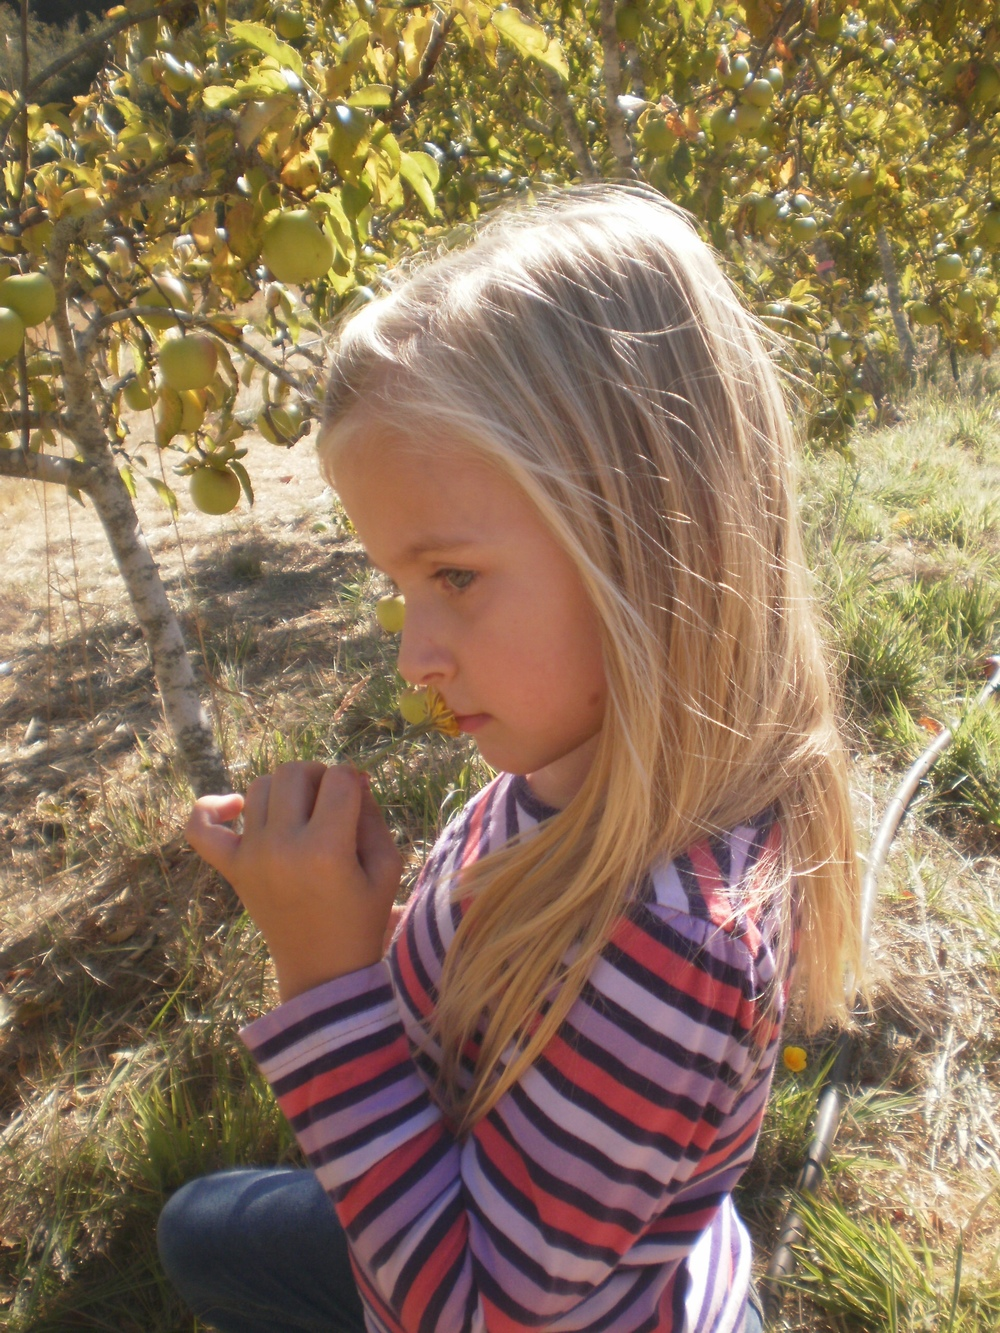 Kayla picking apples several years ago.